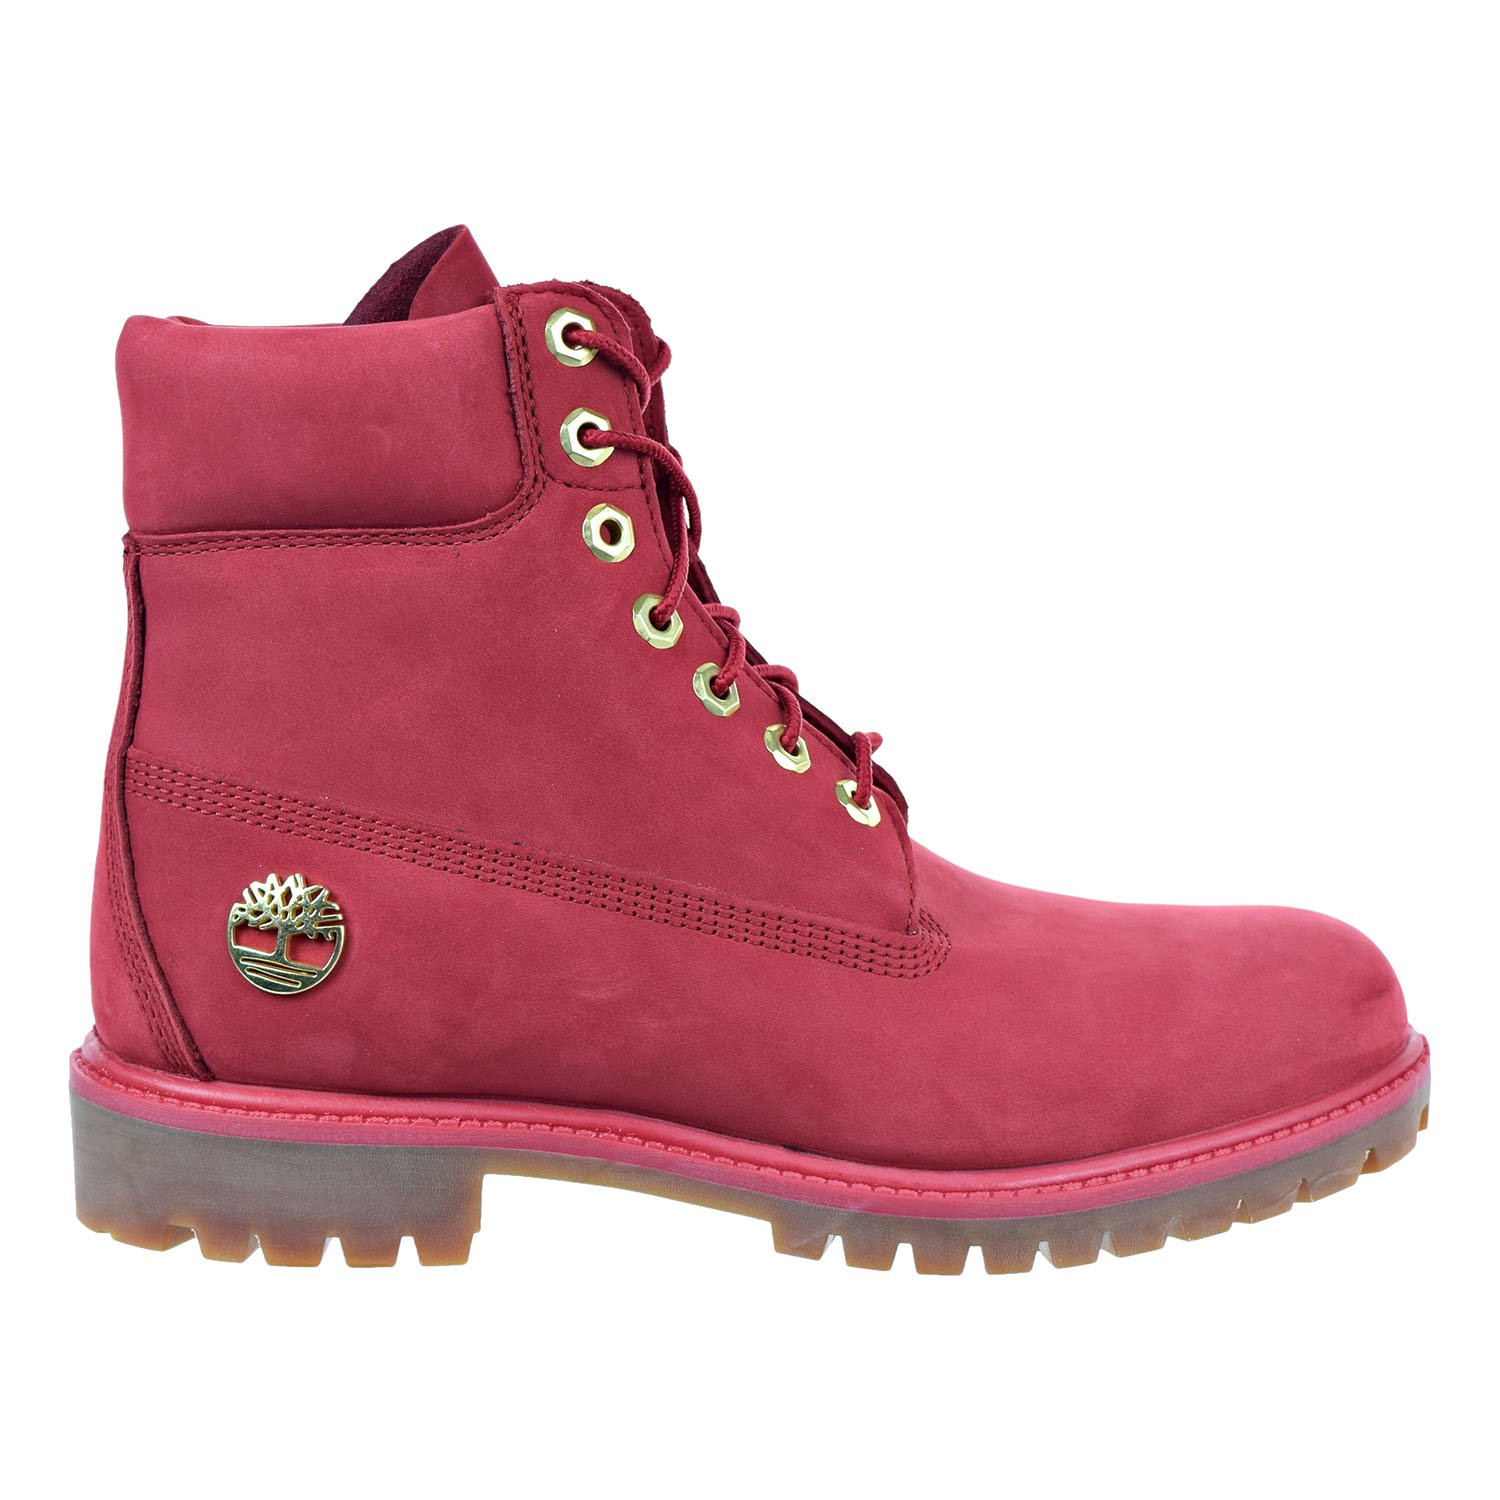 Timberland 6 Inch Premium Waterproof Men's Boots Red tb0a1jlt (11 D(M) US)